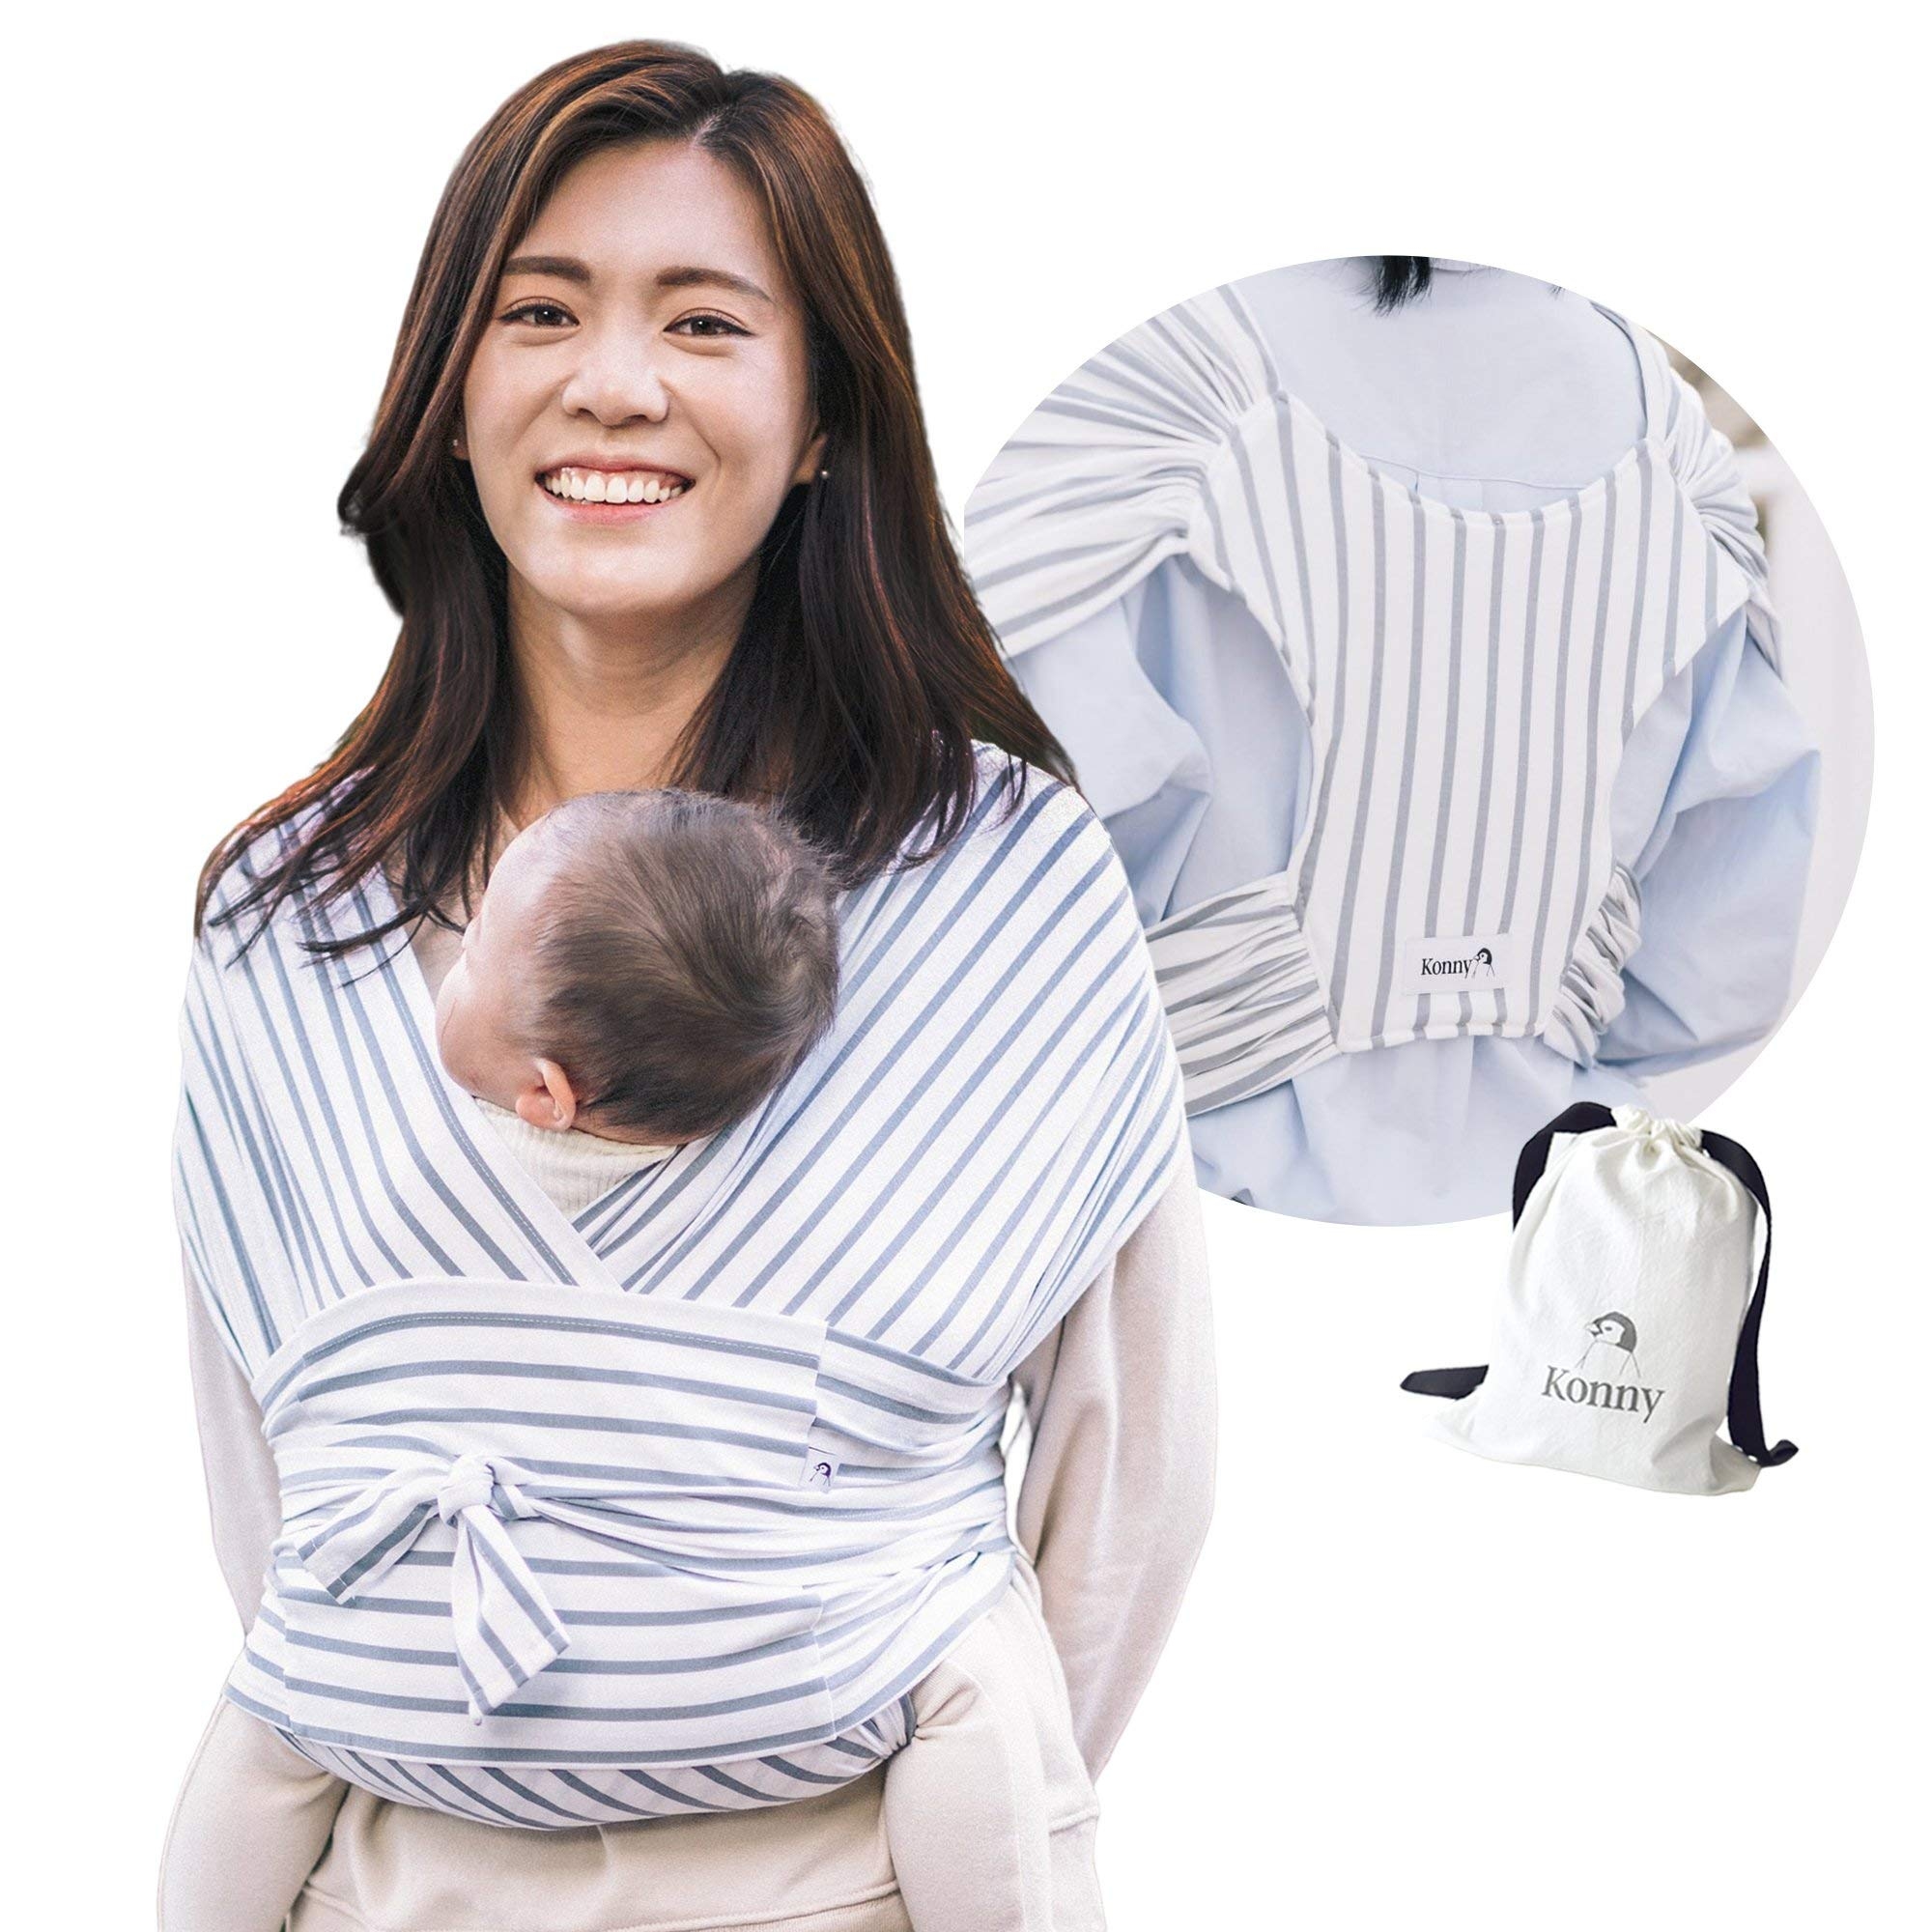 Konny Baby Carrier | Ultra-Lightweight, Hassle-Free Baby Wrap Sling | Newborns, Infants to 44 lbs Toddlers | Soft and Breathable Fabric | Sensible Sleep Solution (Stripe, 3XL)